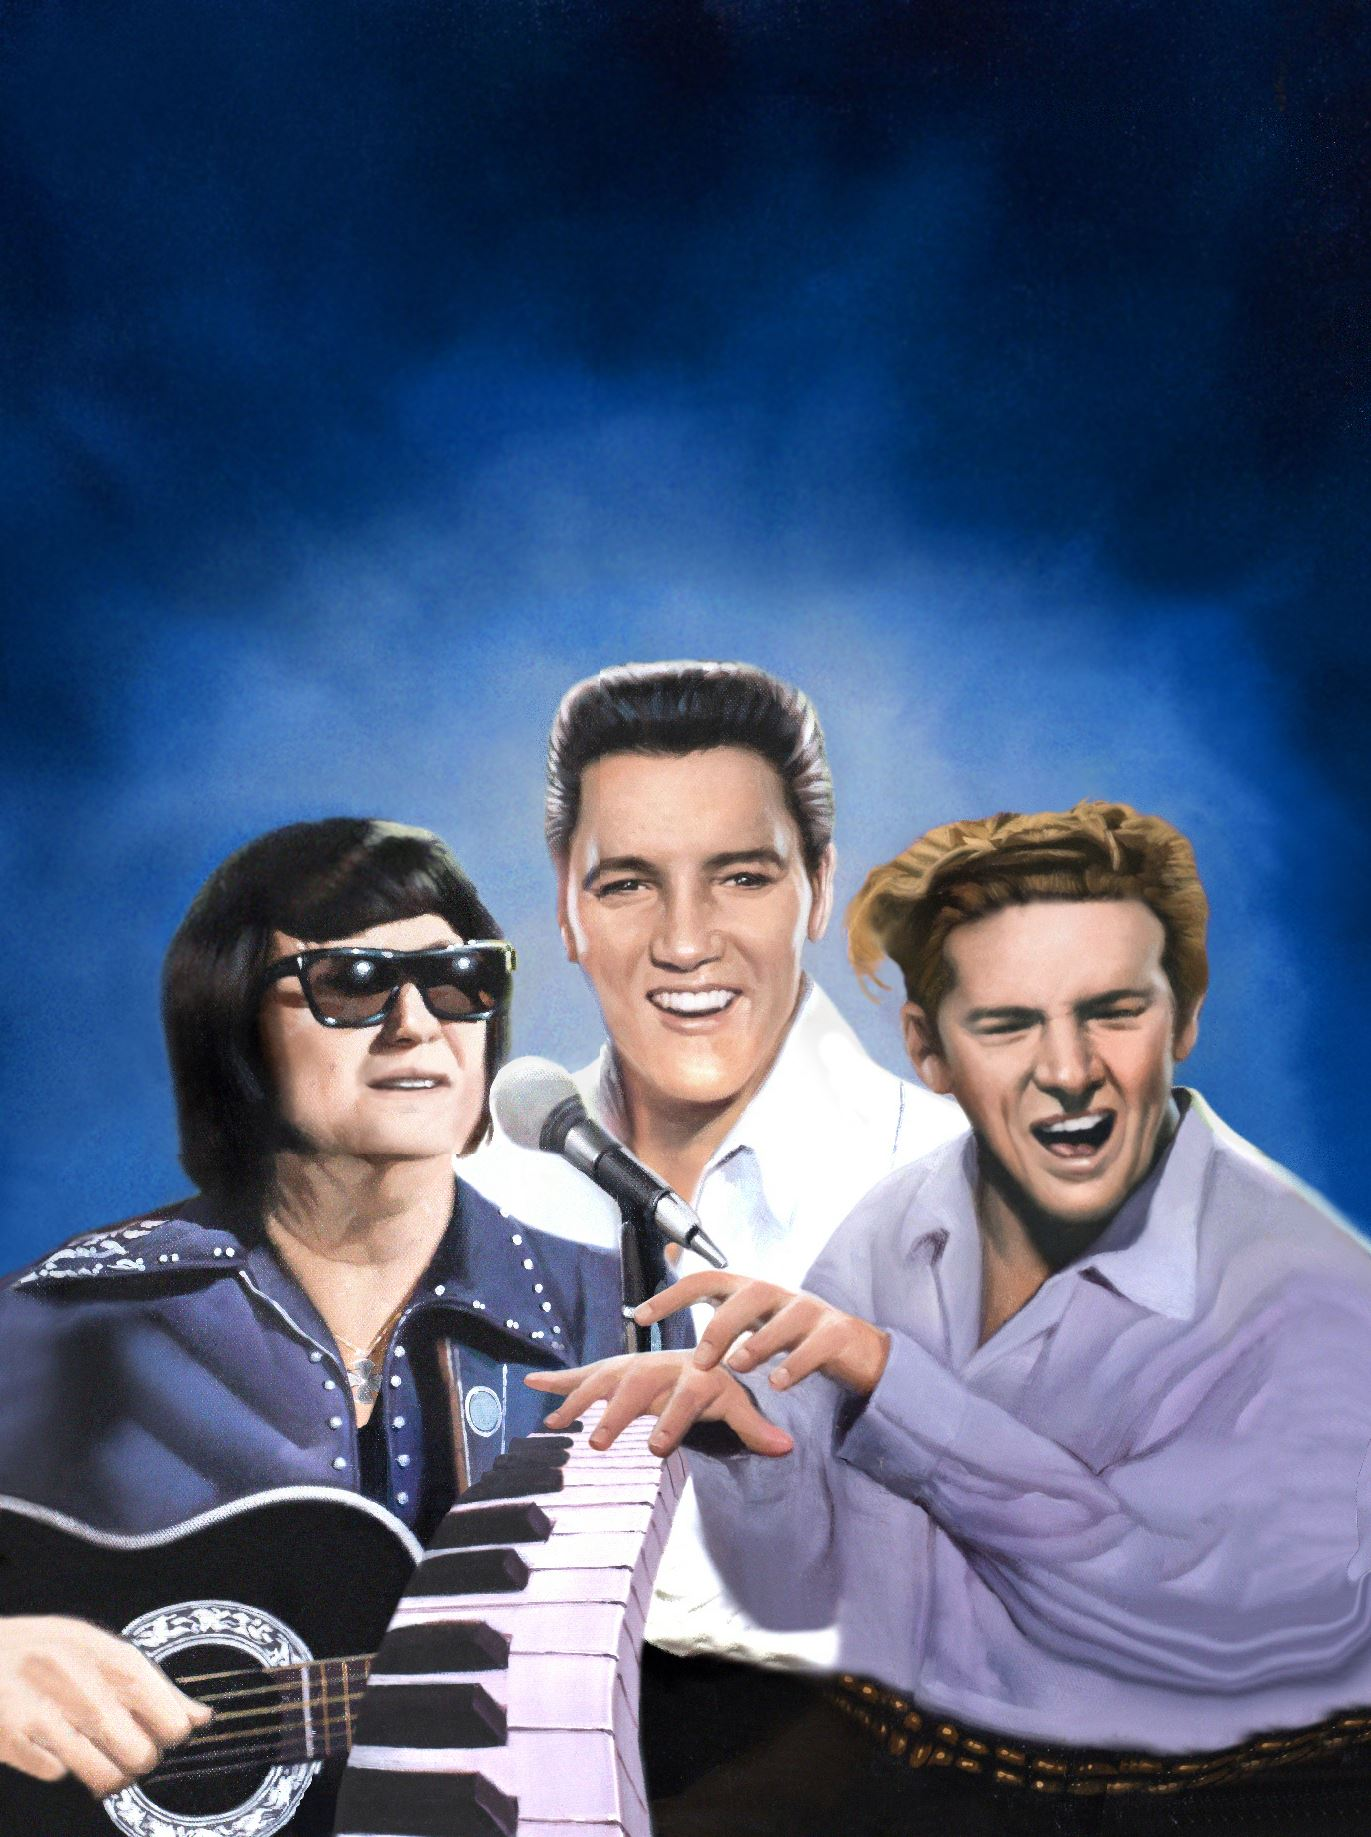 The Legends - Greatest Hits Tour